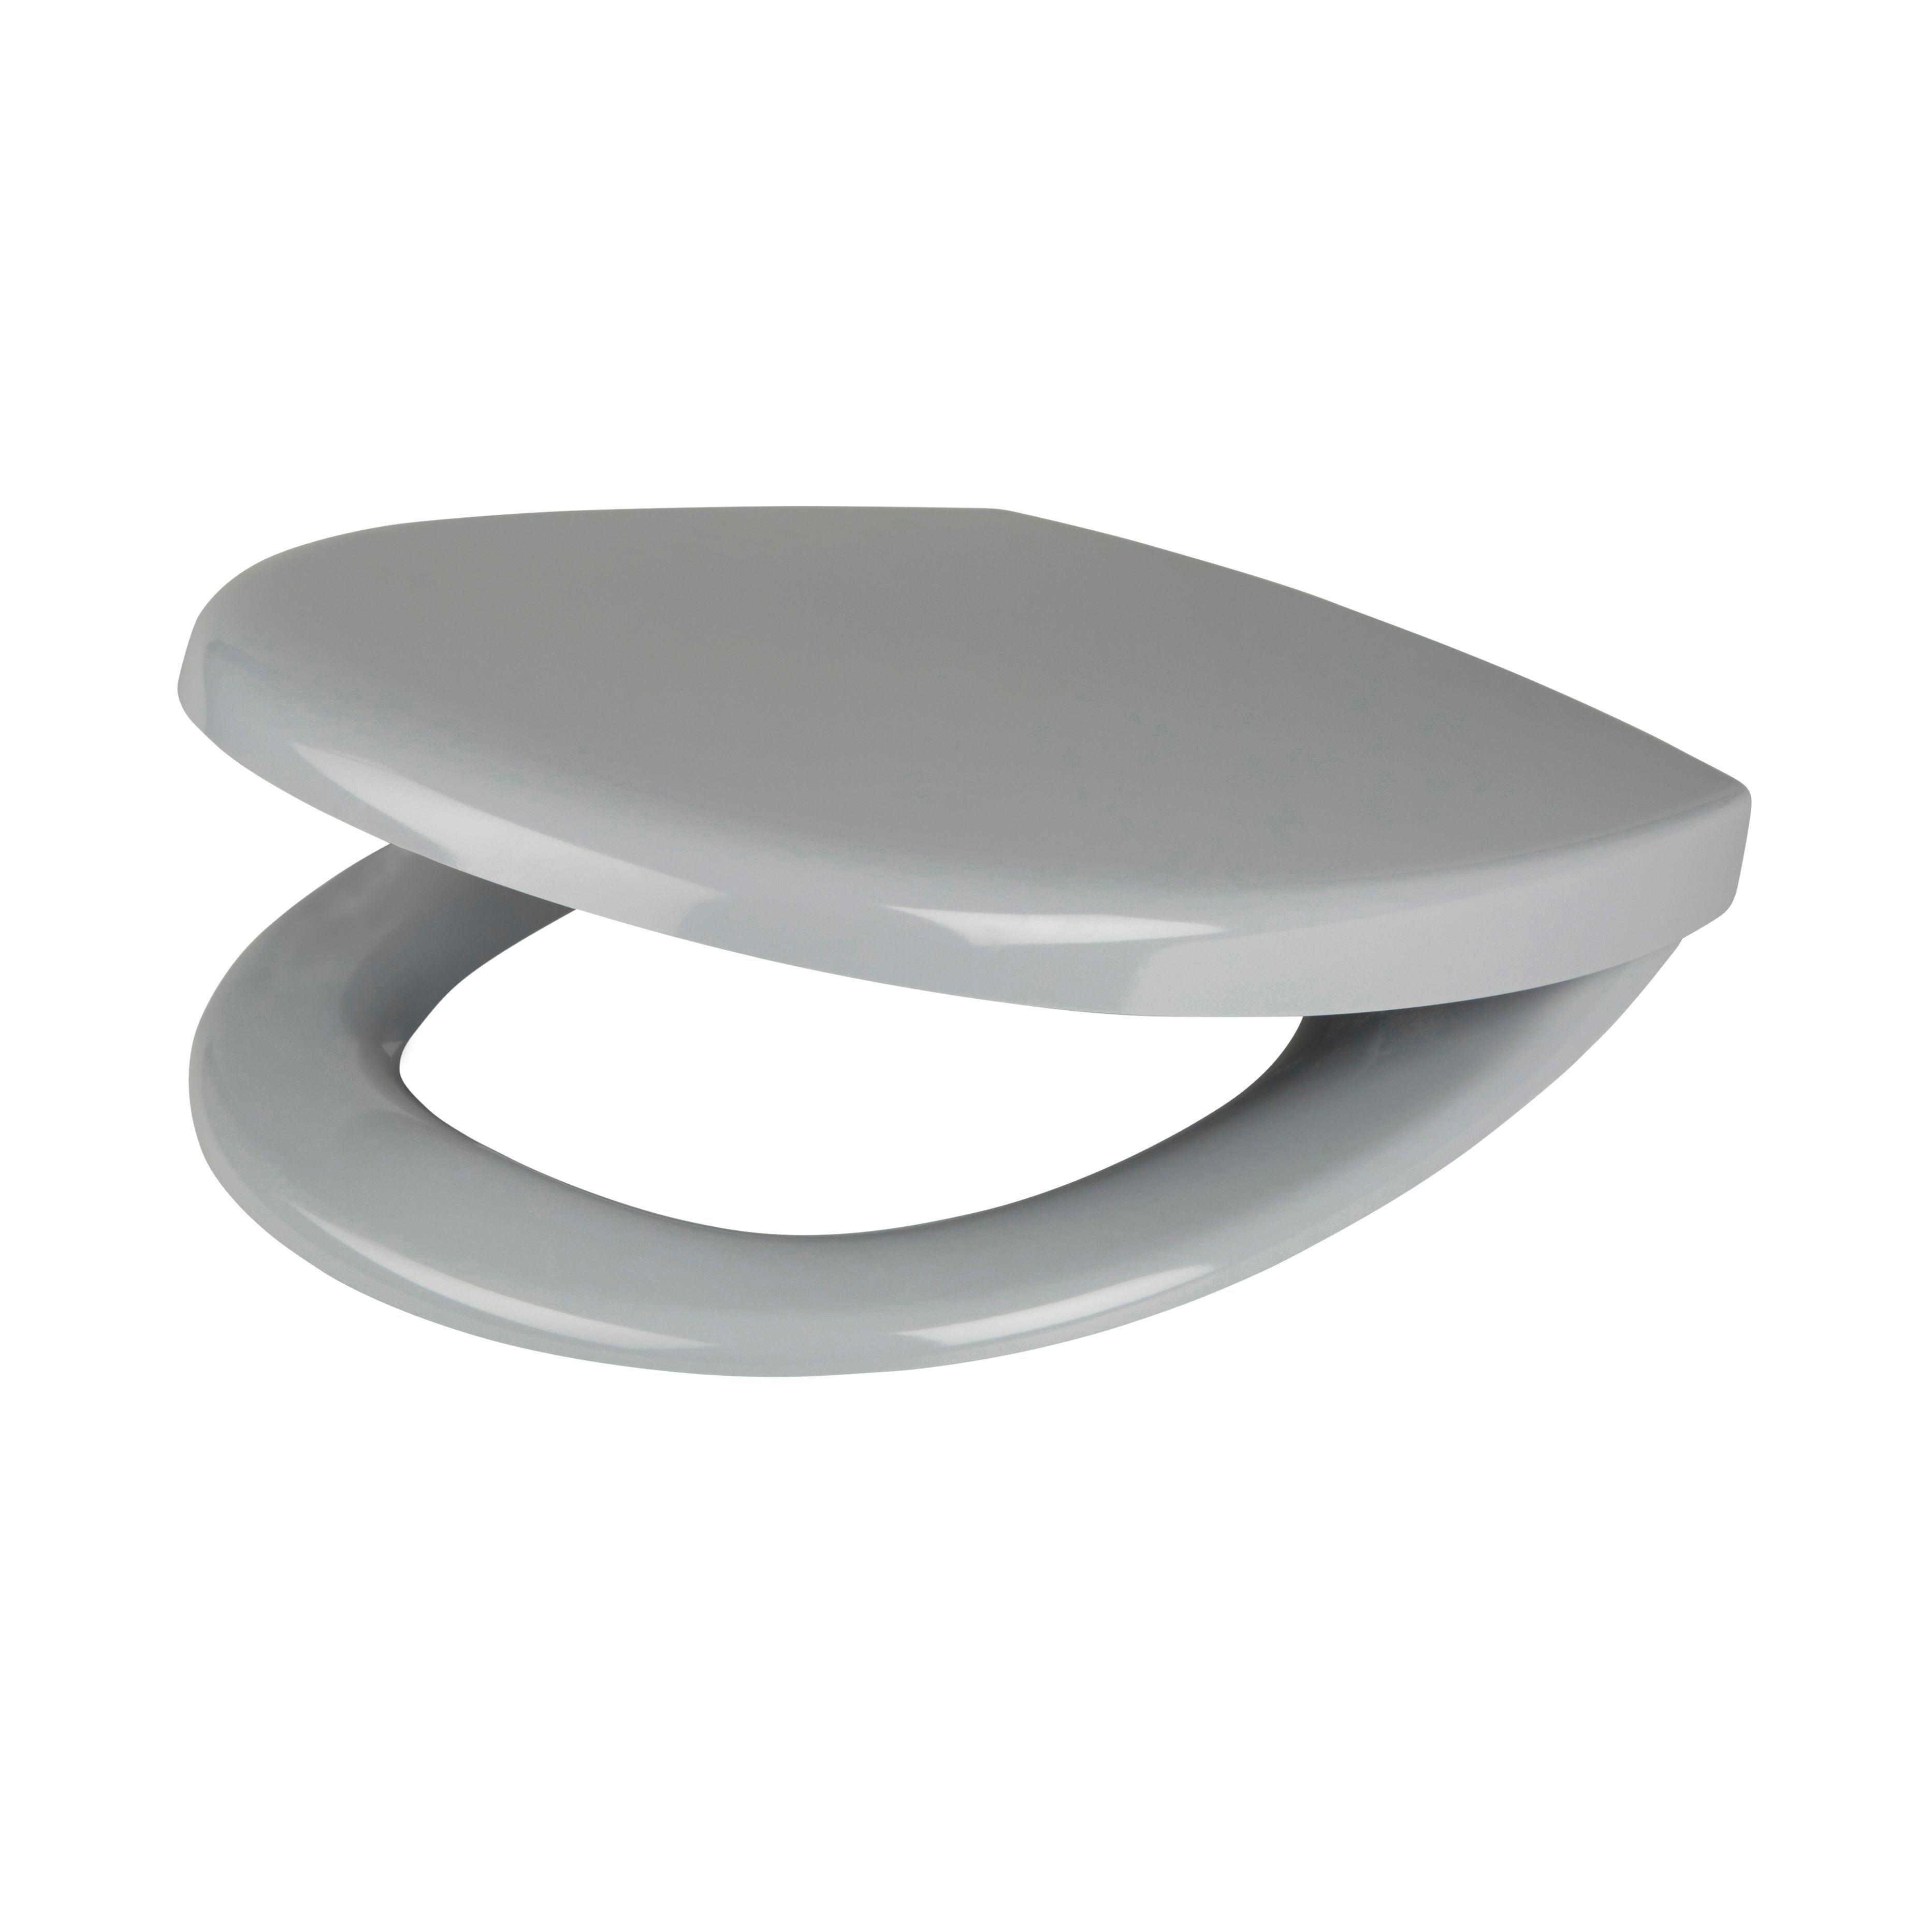 Stupendous Cooke Lewis Valtos Grey Top Fix Soft Close Toilet Seat Gmtry Best Dining Table And Chair Ideas Images Gmtryco